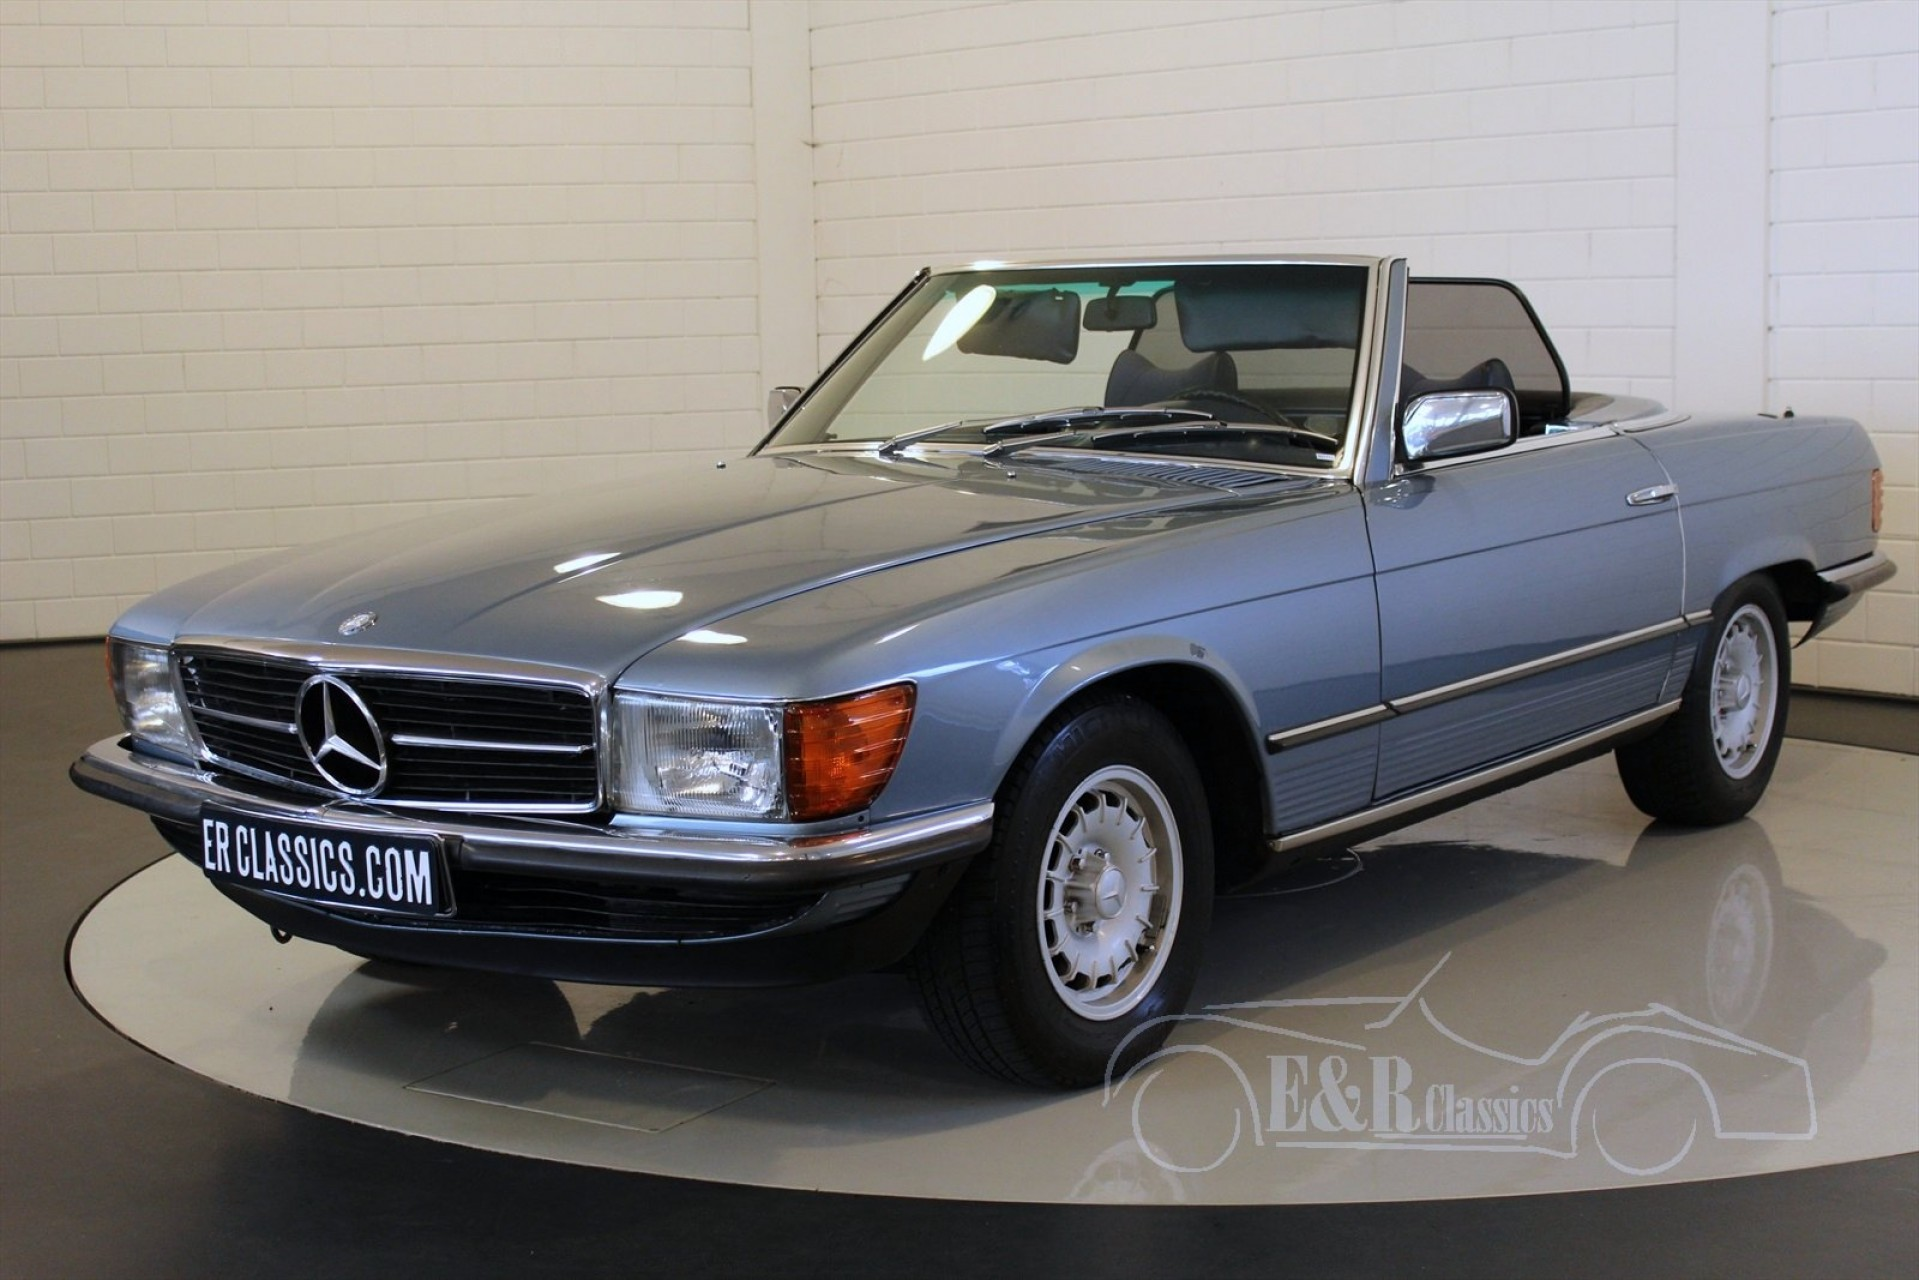 Mercedes benz sl 280 1978 for sale at erclassics for Mercedes benz sl550 for sale